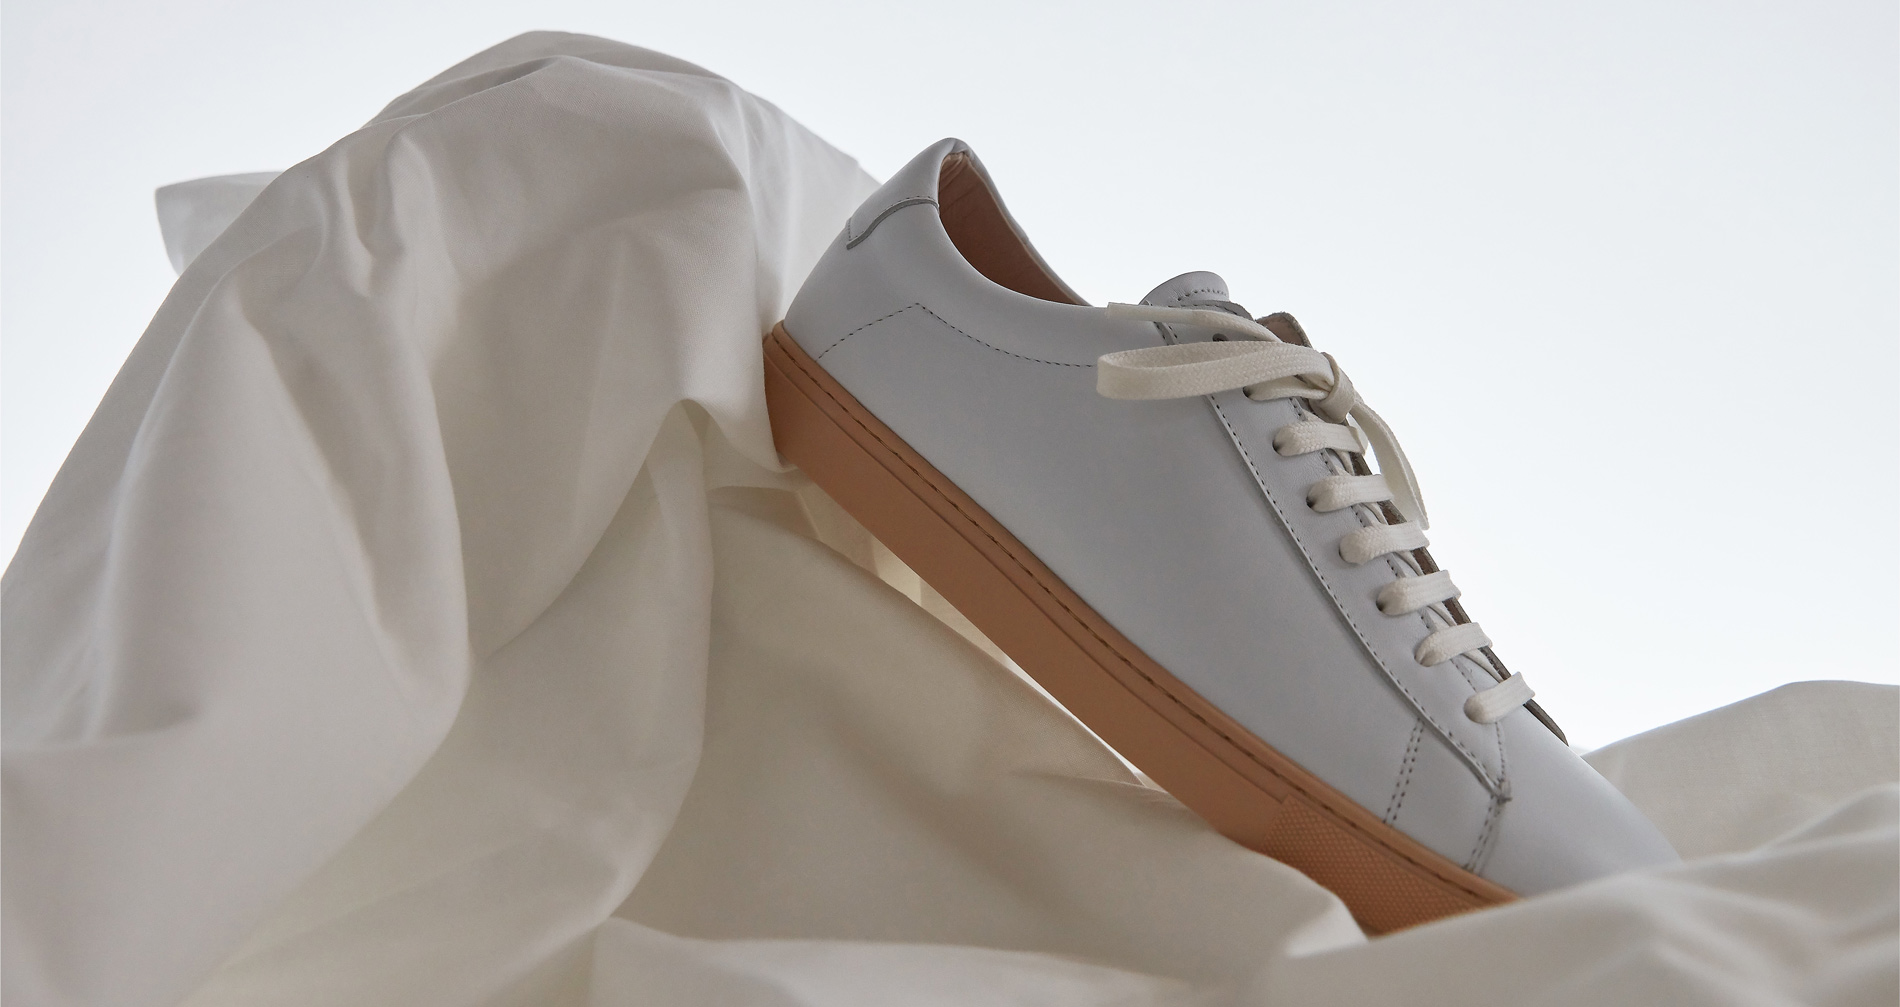 AESTHETNIK x oliver cabell low 1 8